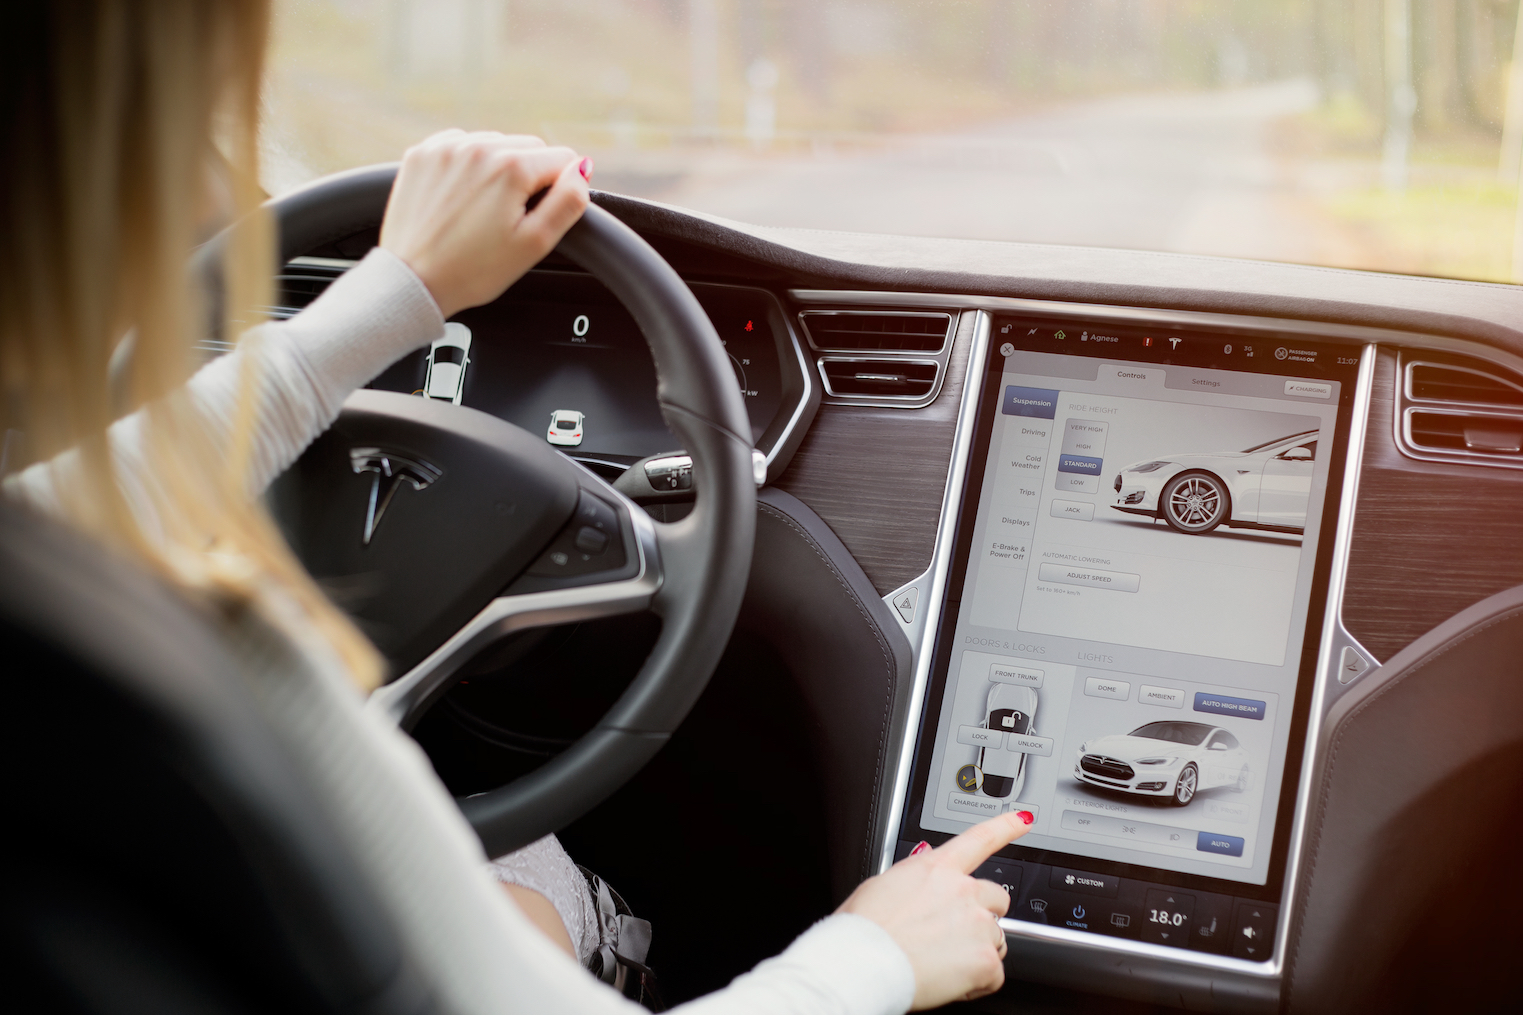 A new study has revealed that new high-tech car features take the driver's attention off the road for too long to be safe.